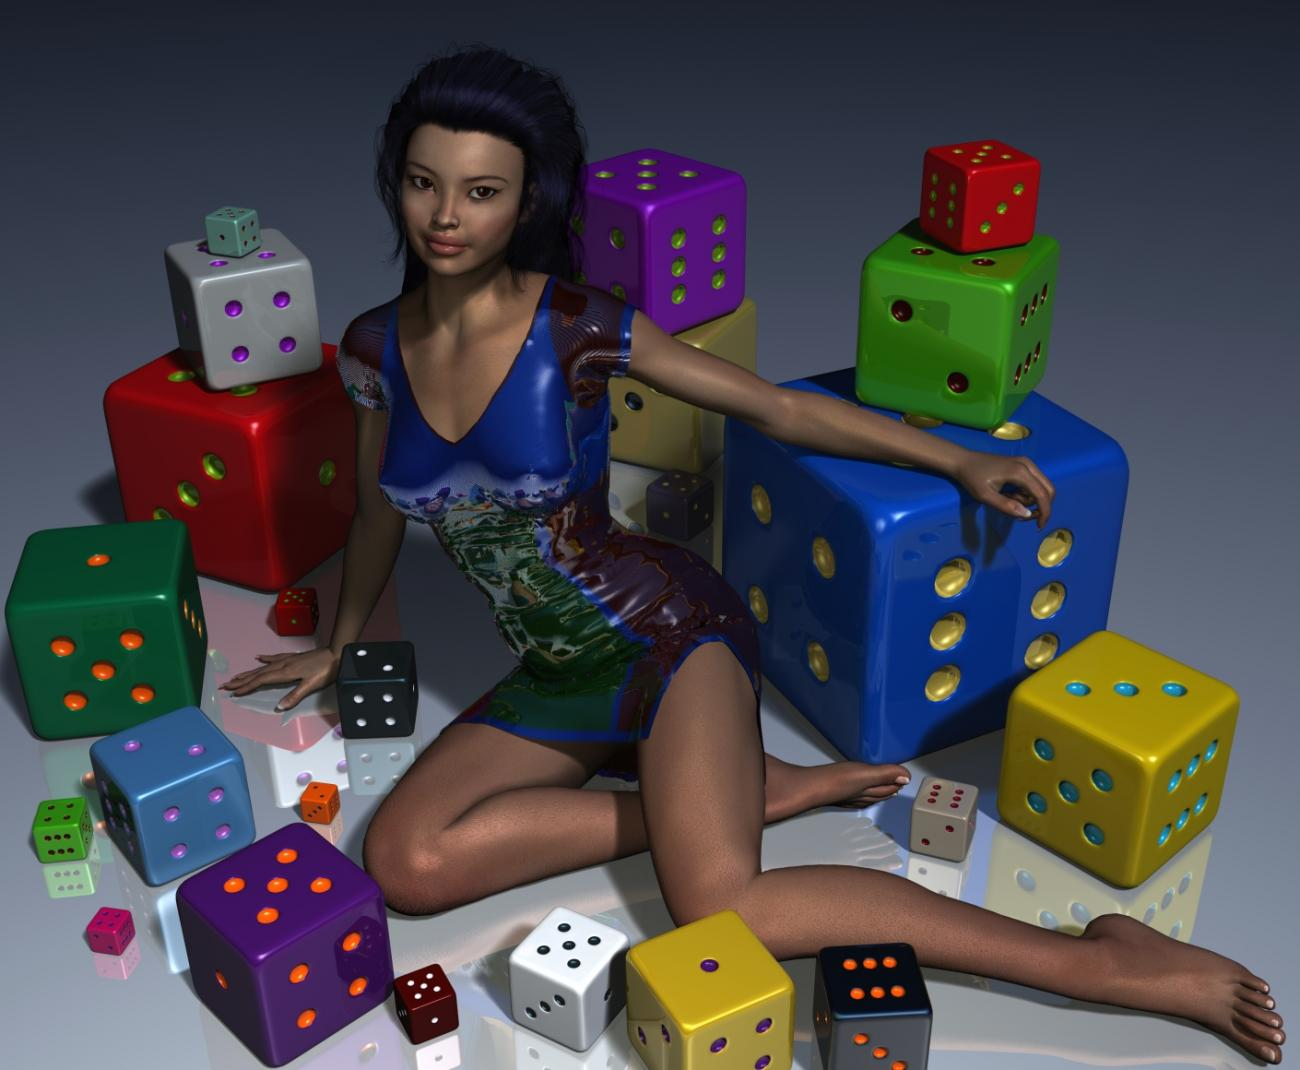 Girl and Dice